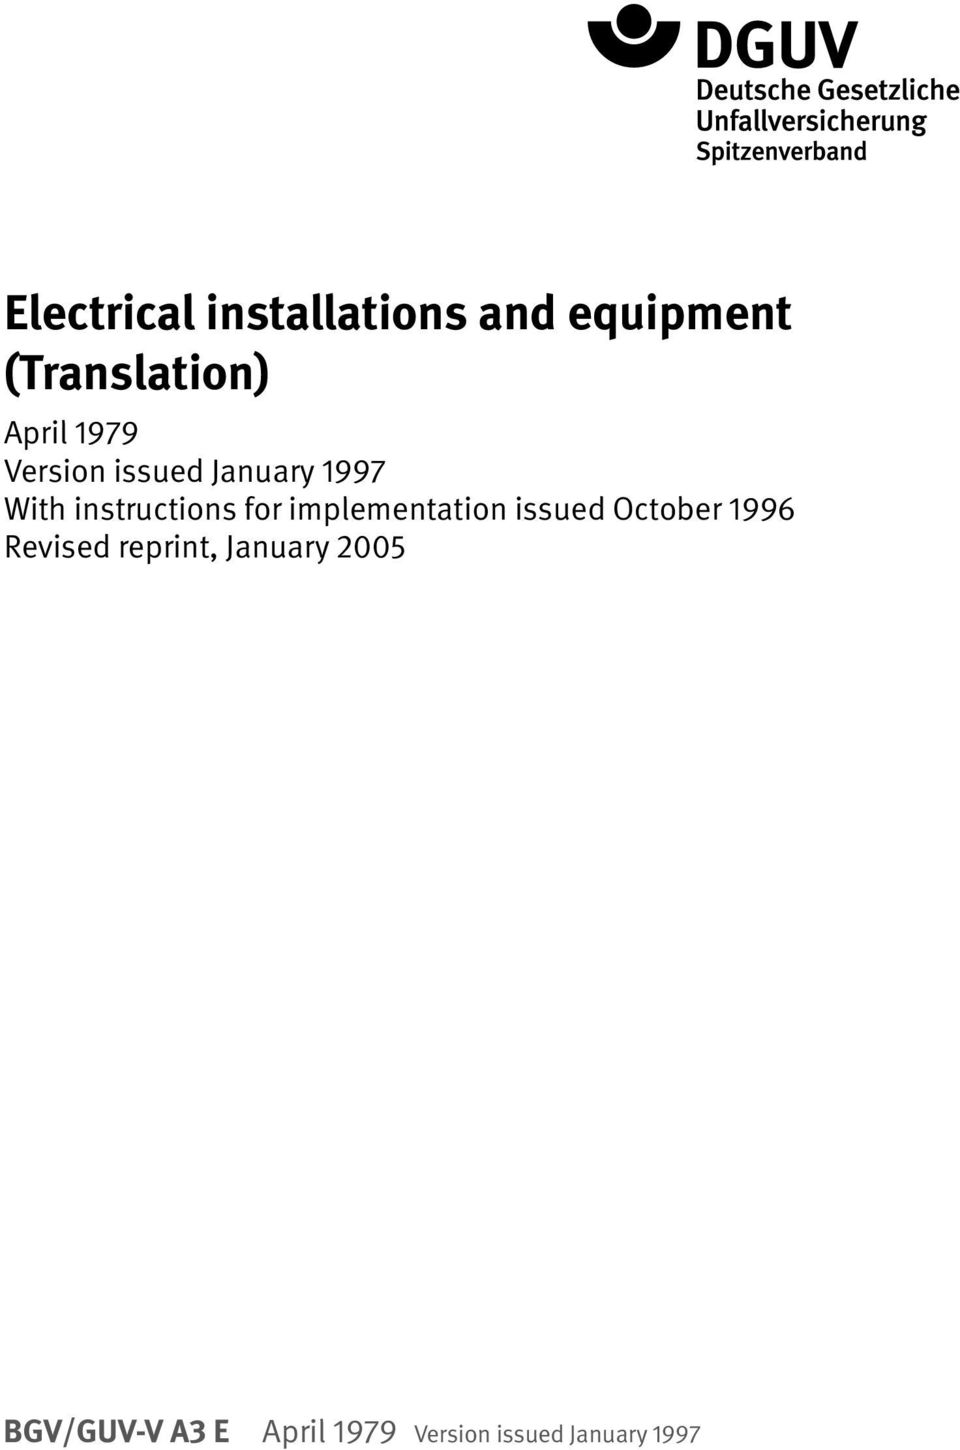 for implementation issued October 1996 Revised reprint,